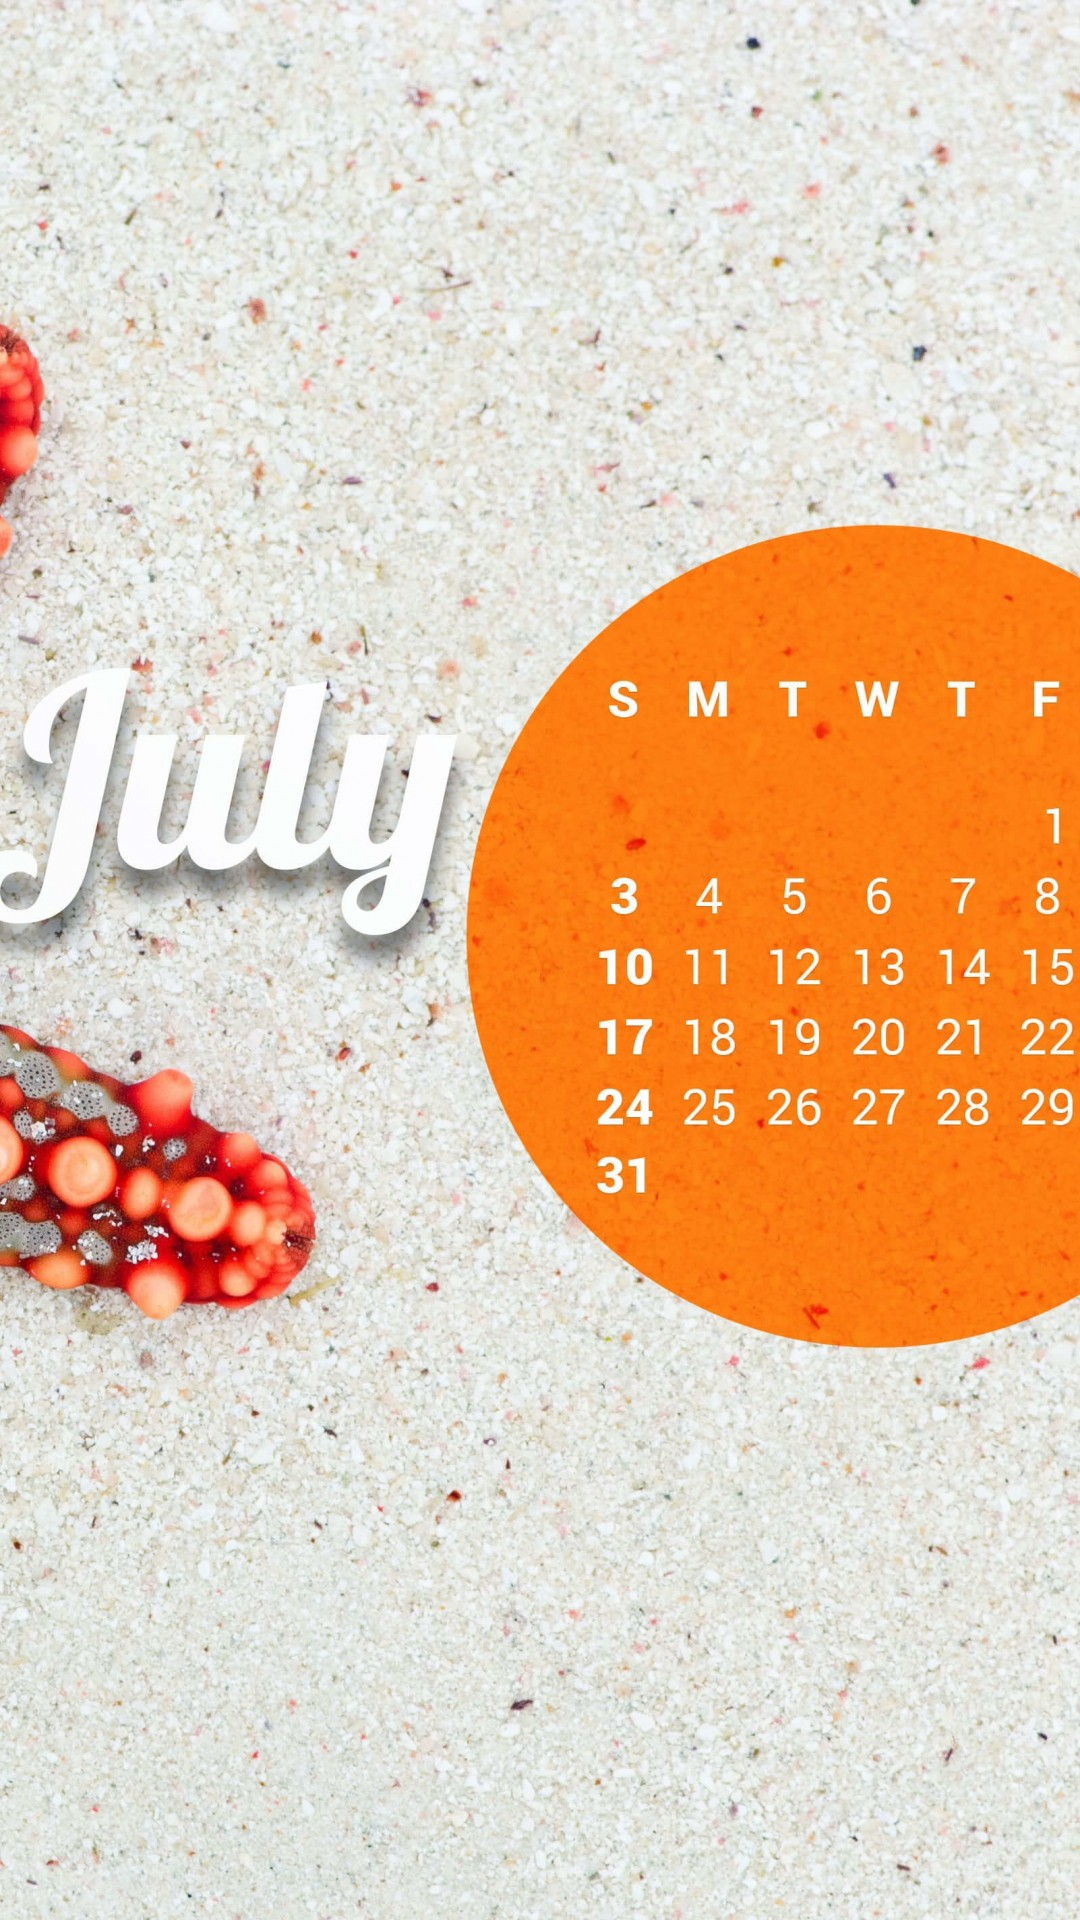 July 2016 Calendar Wallpaper for SONY Xperia Z1